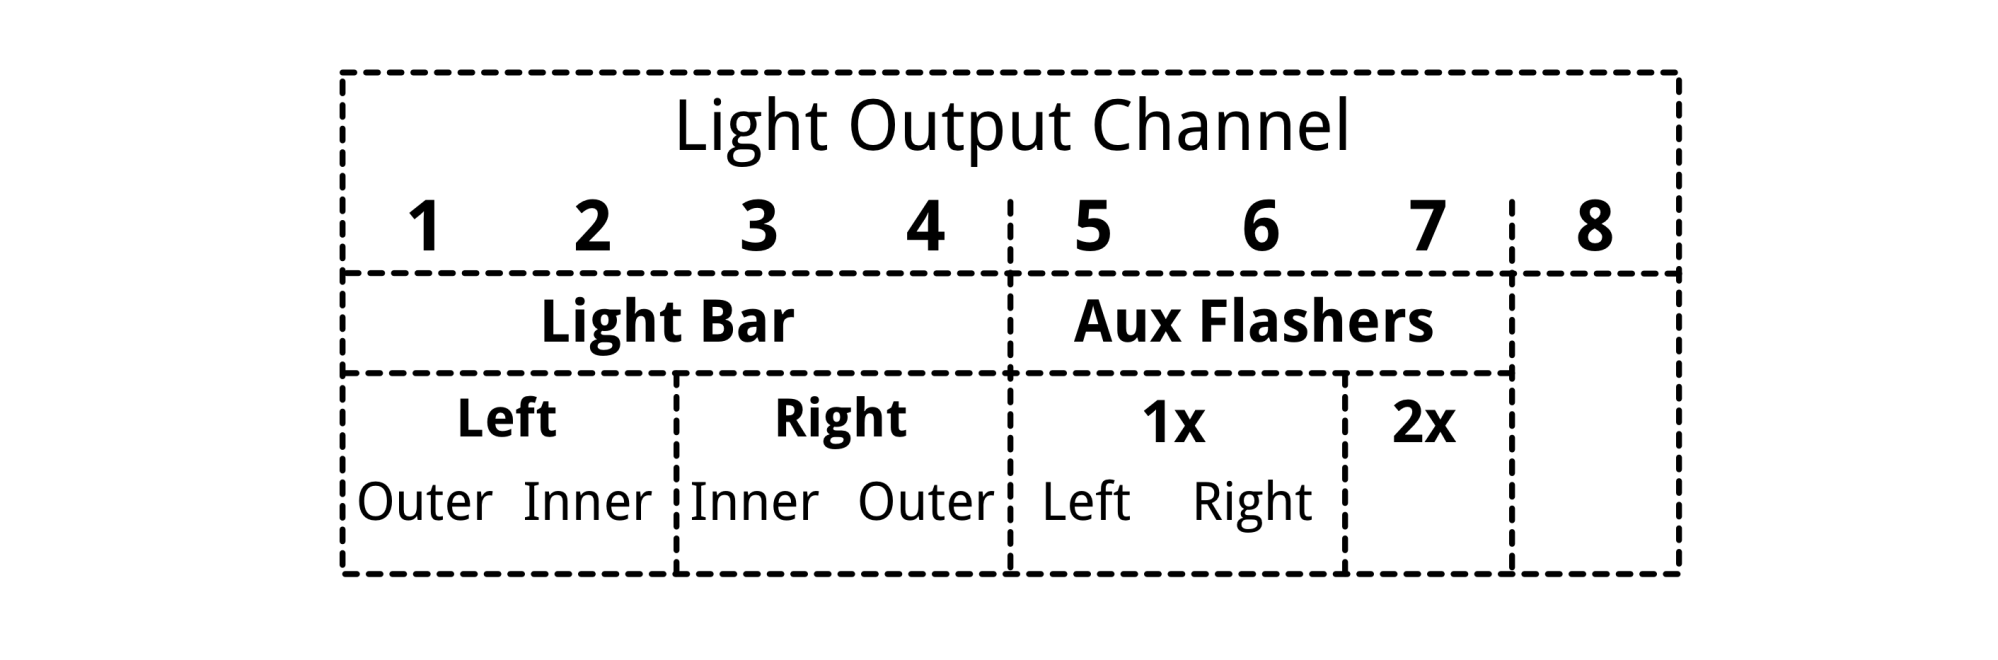 hight resolution of the lightbar or roof mounted lights consist of a group of 4 lights which flash in variety of different styles often these lights will be co packaged into